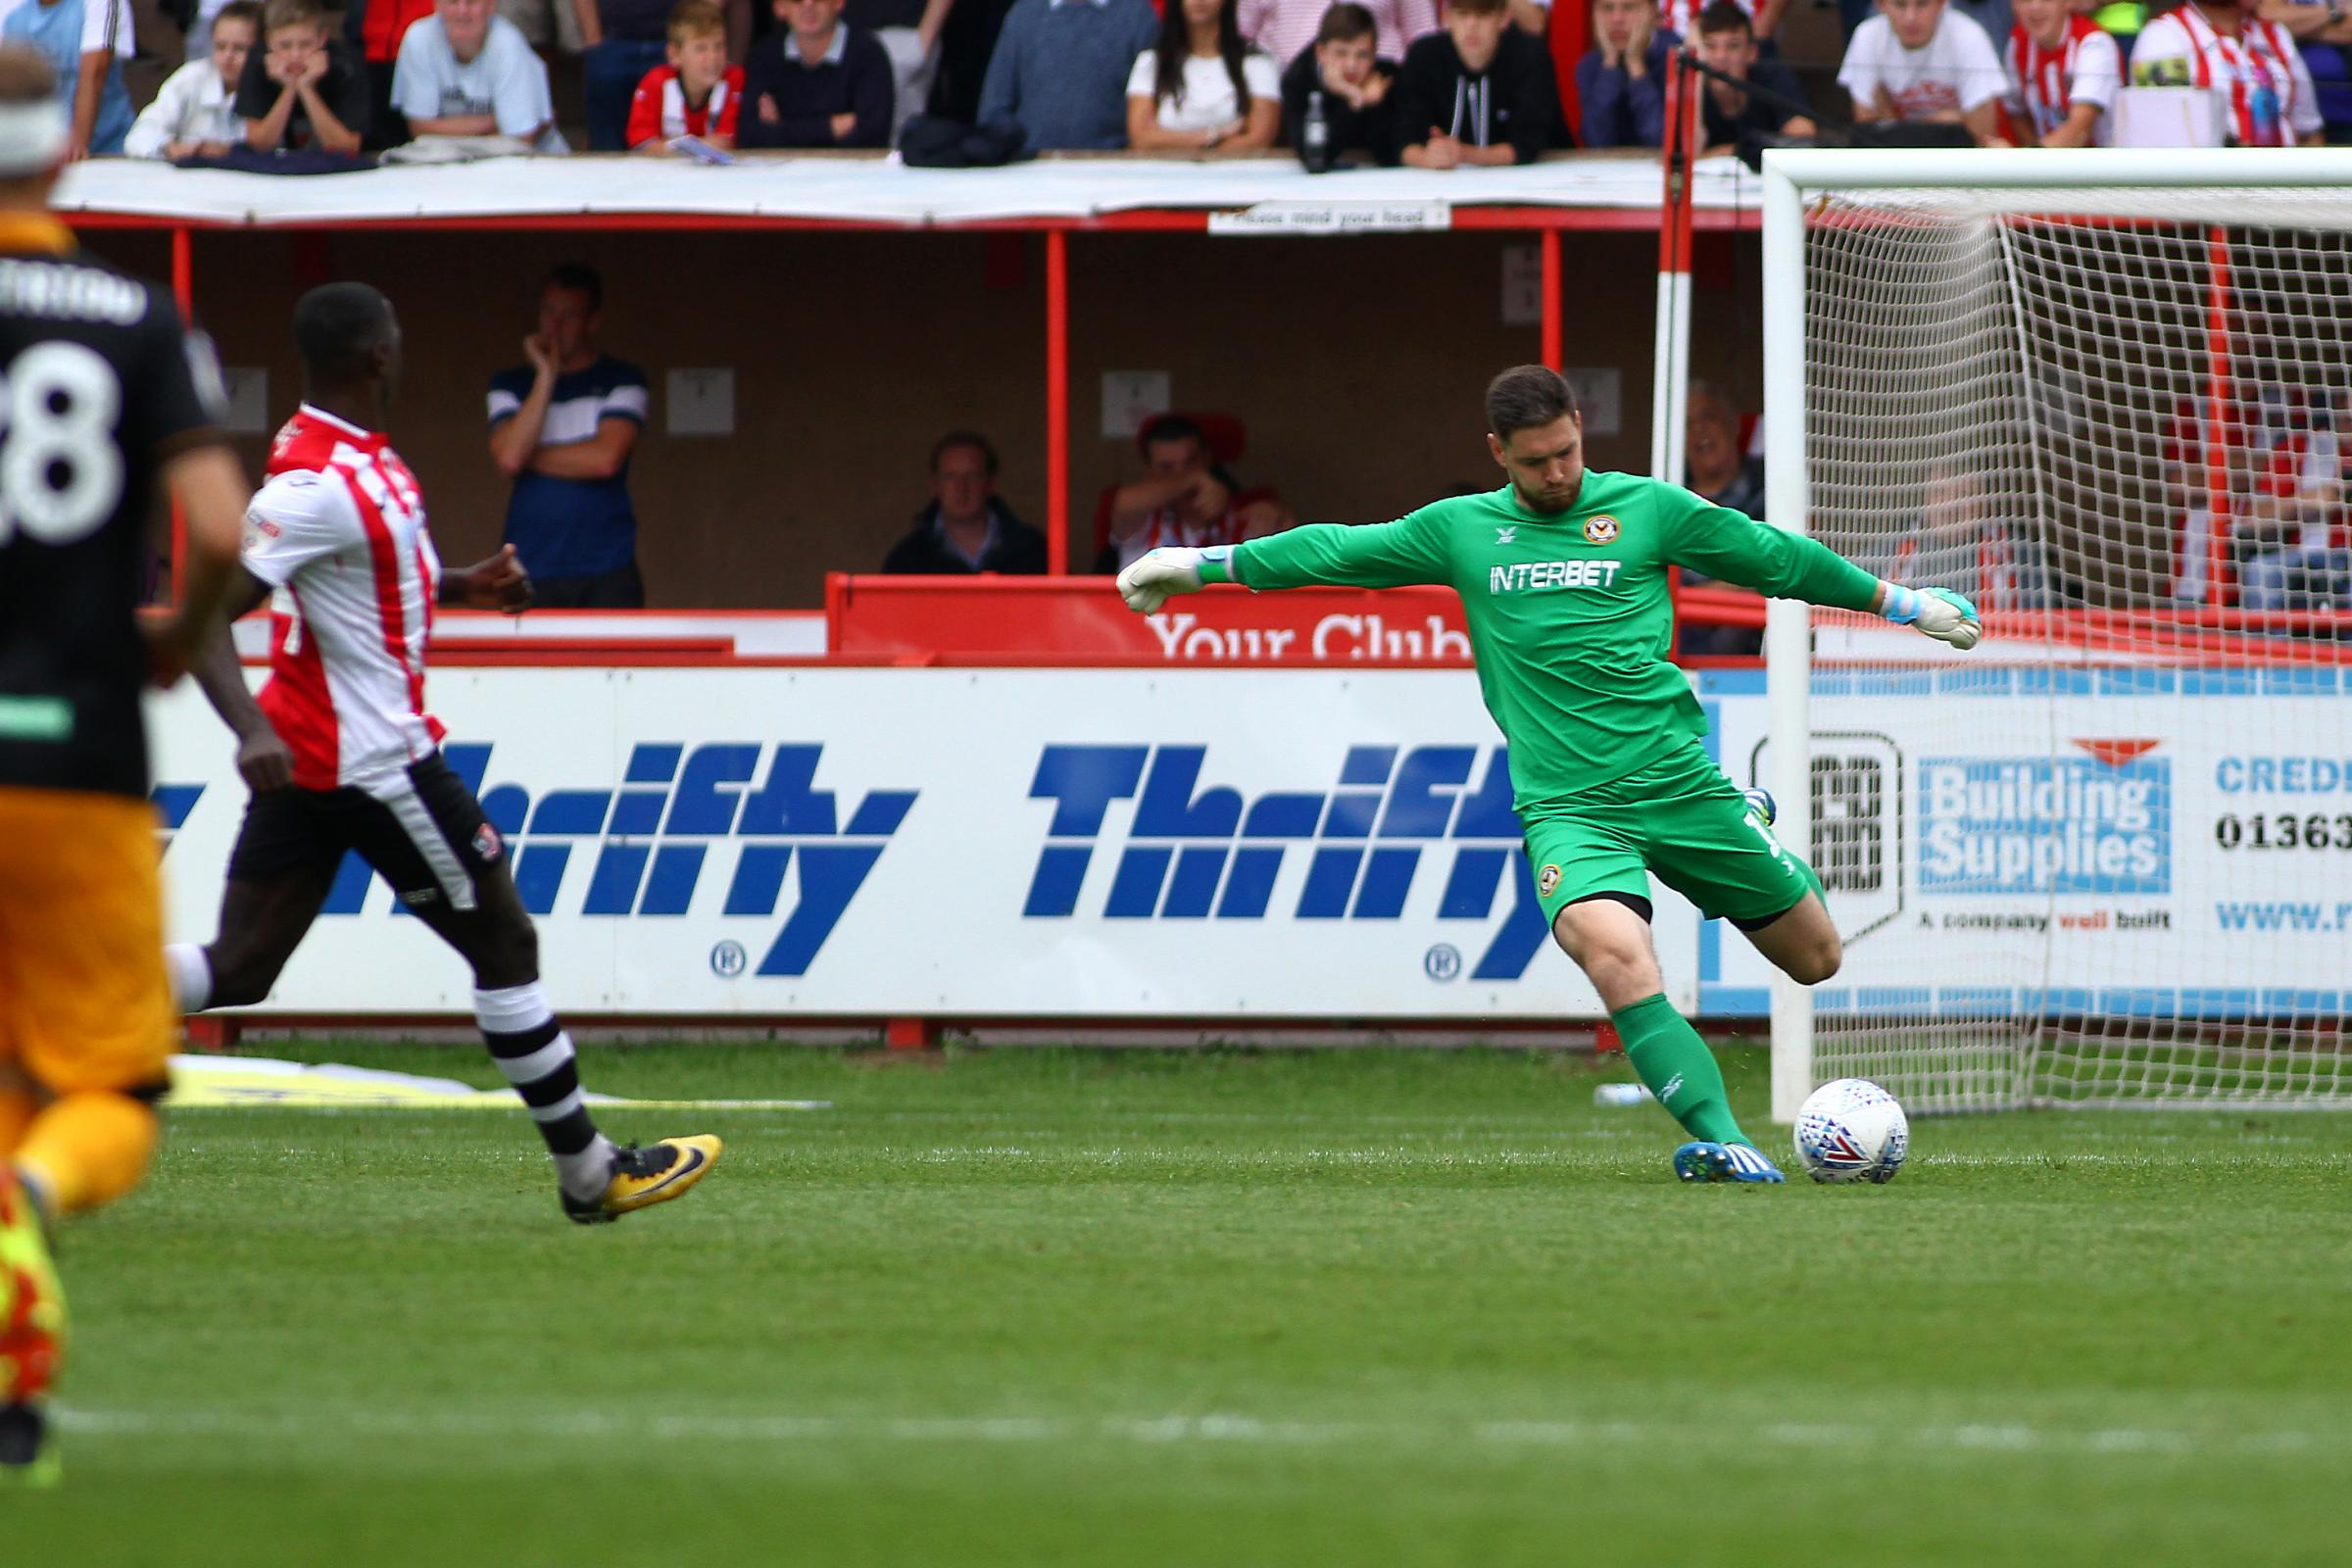 INSPIRED: Newport County goalkeeper Joe Day clears the danger at Exeter City on Saturday. Picture: Huw Evans Agency